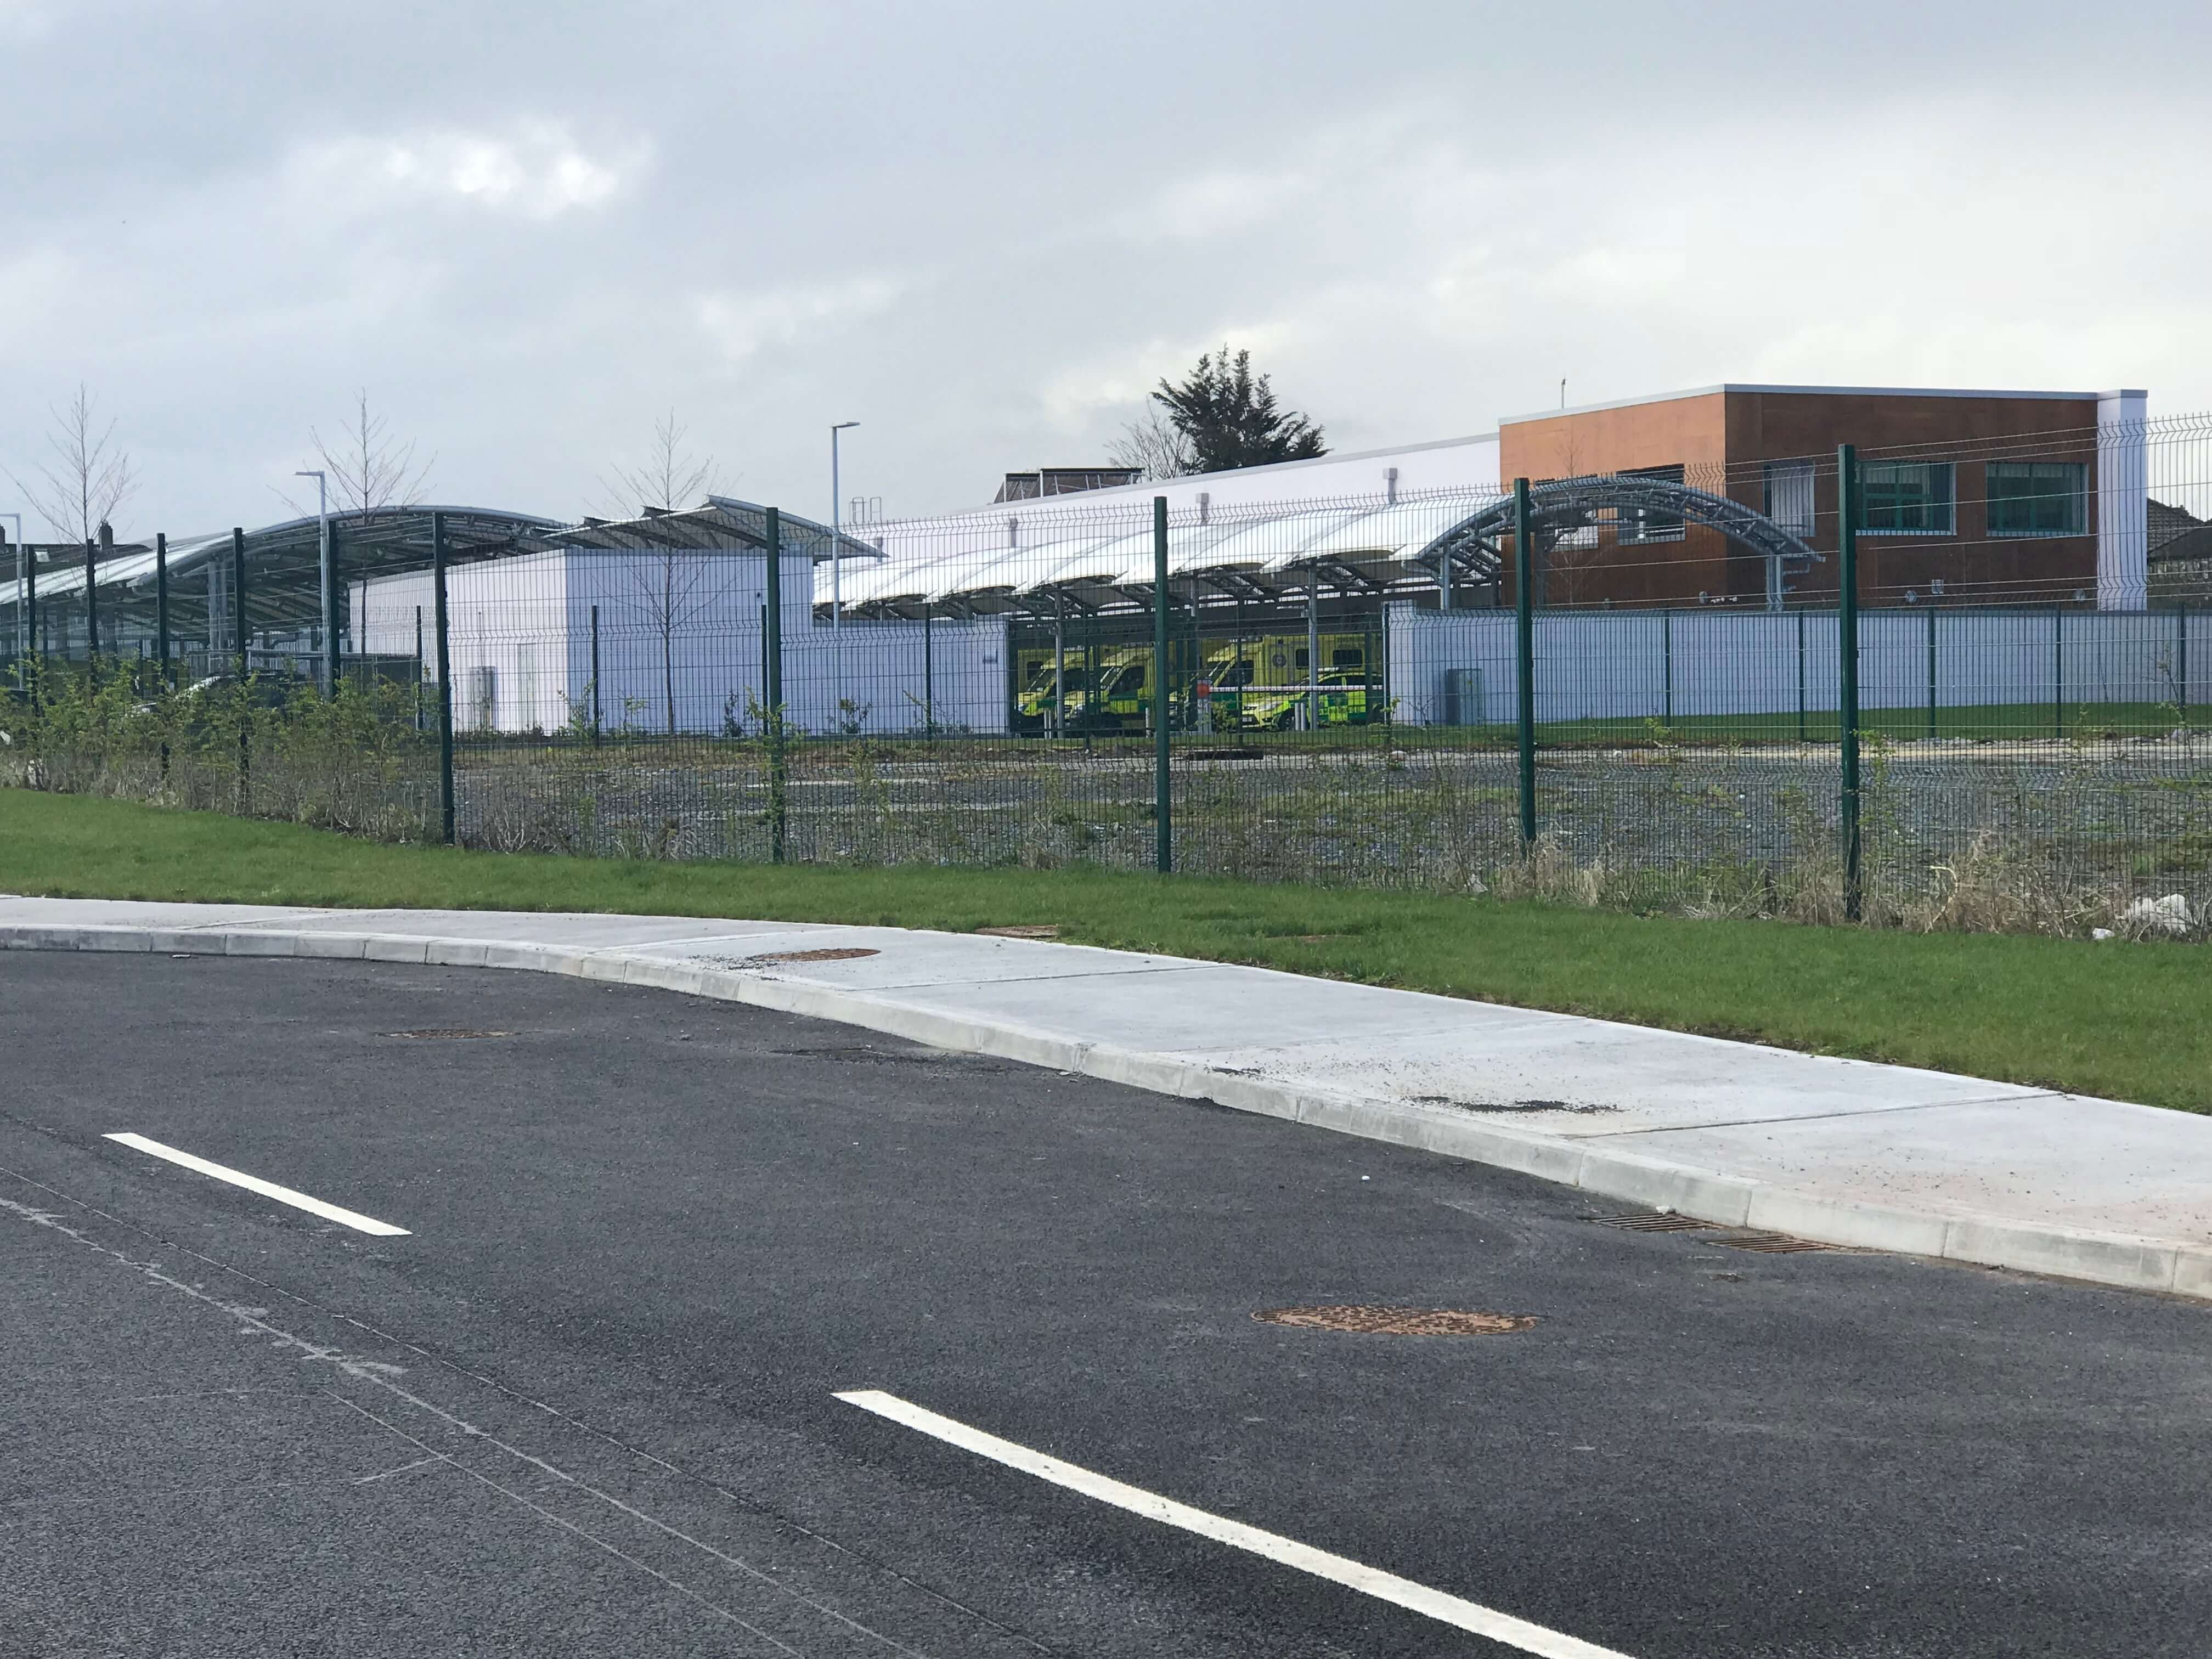 The site of the new National Ambulance Service base on the canal in Dublin. Photo credit: Bronwyn Molony.